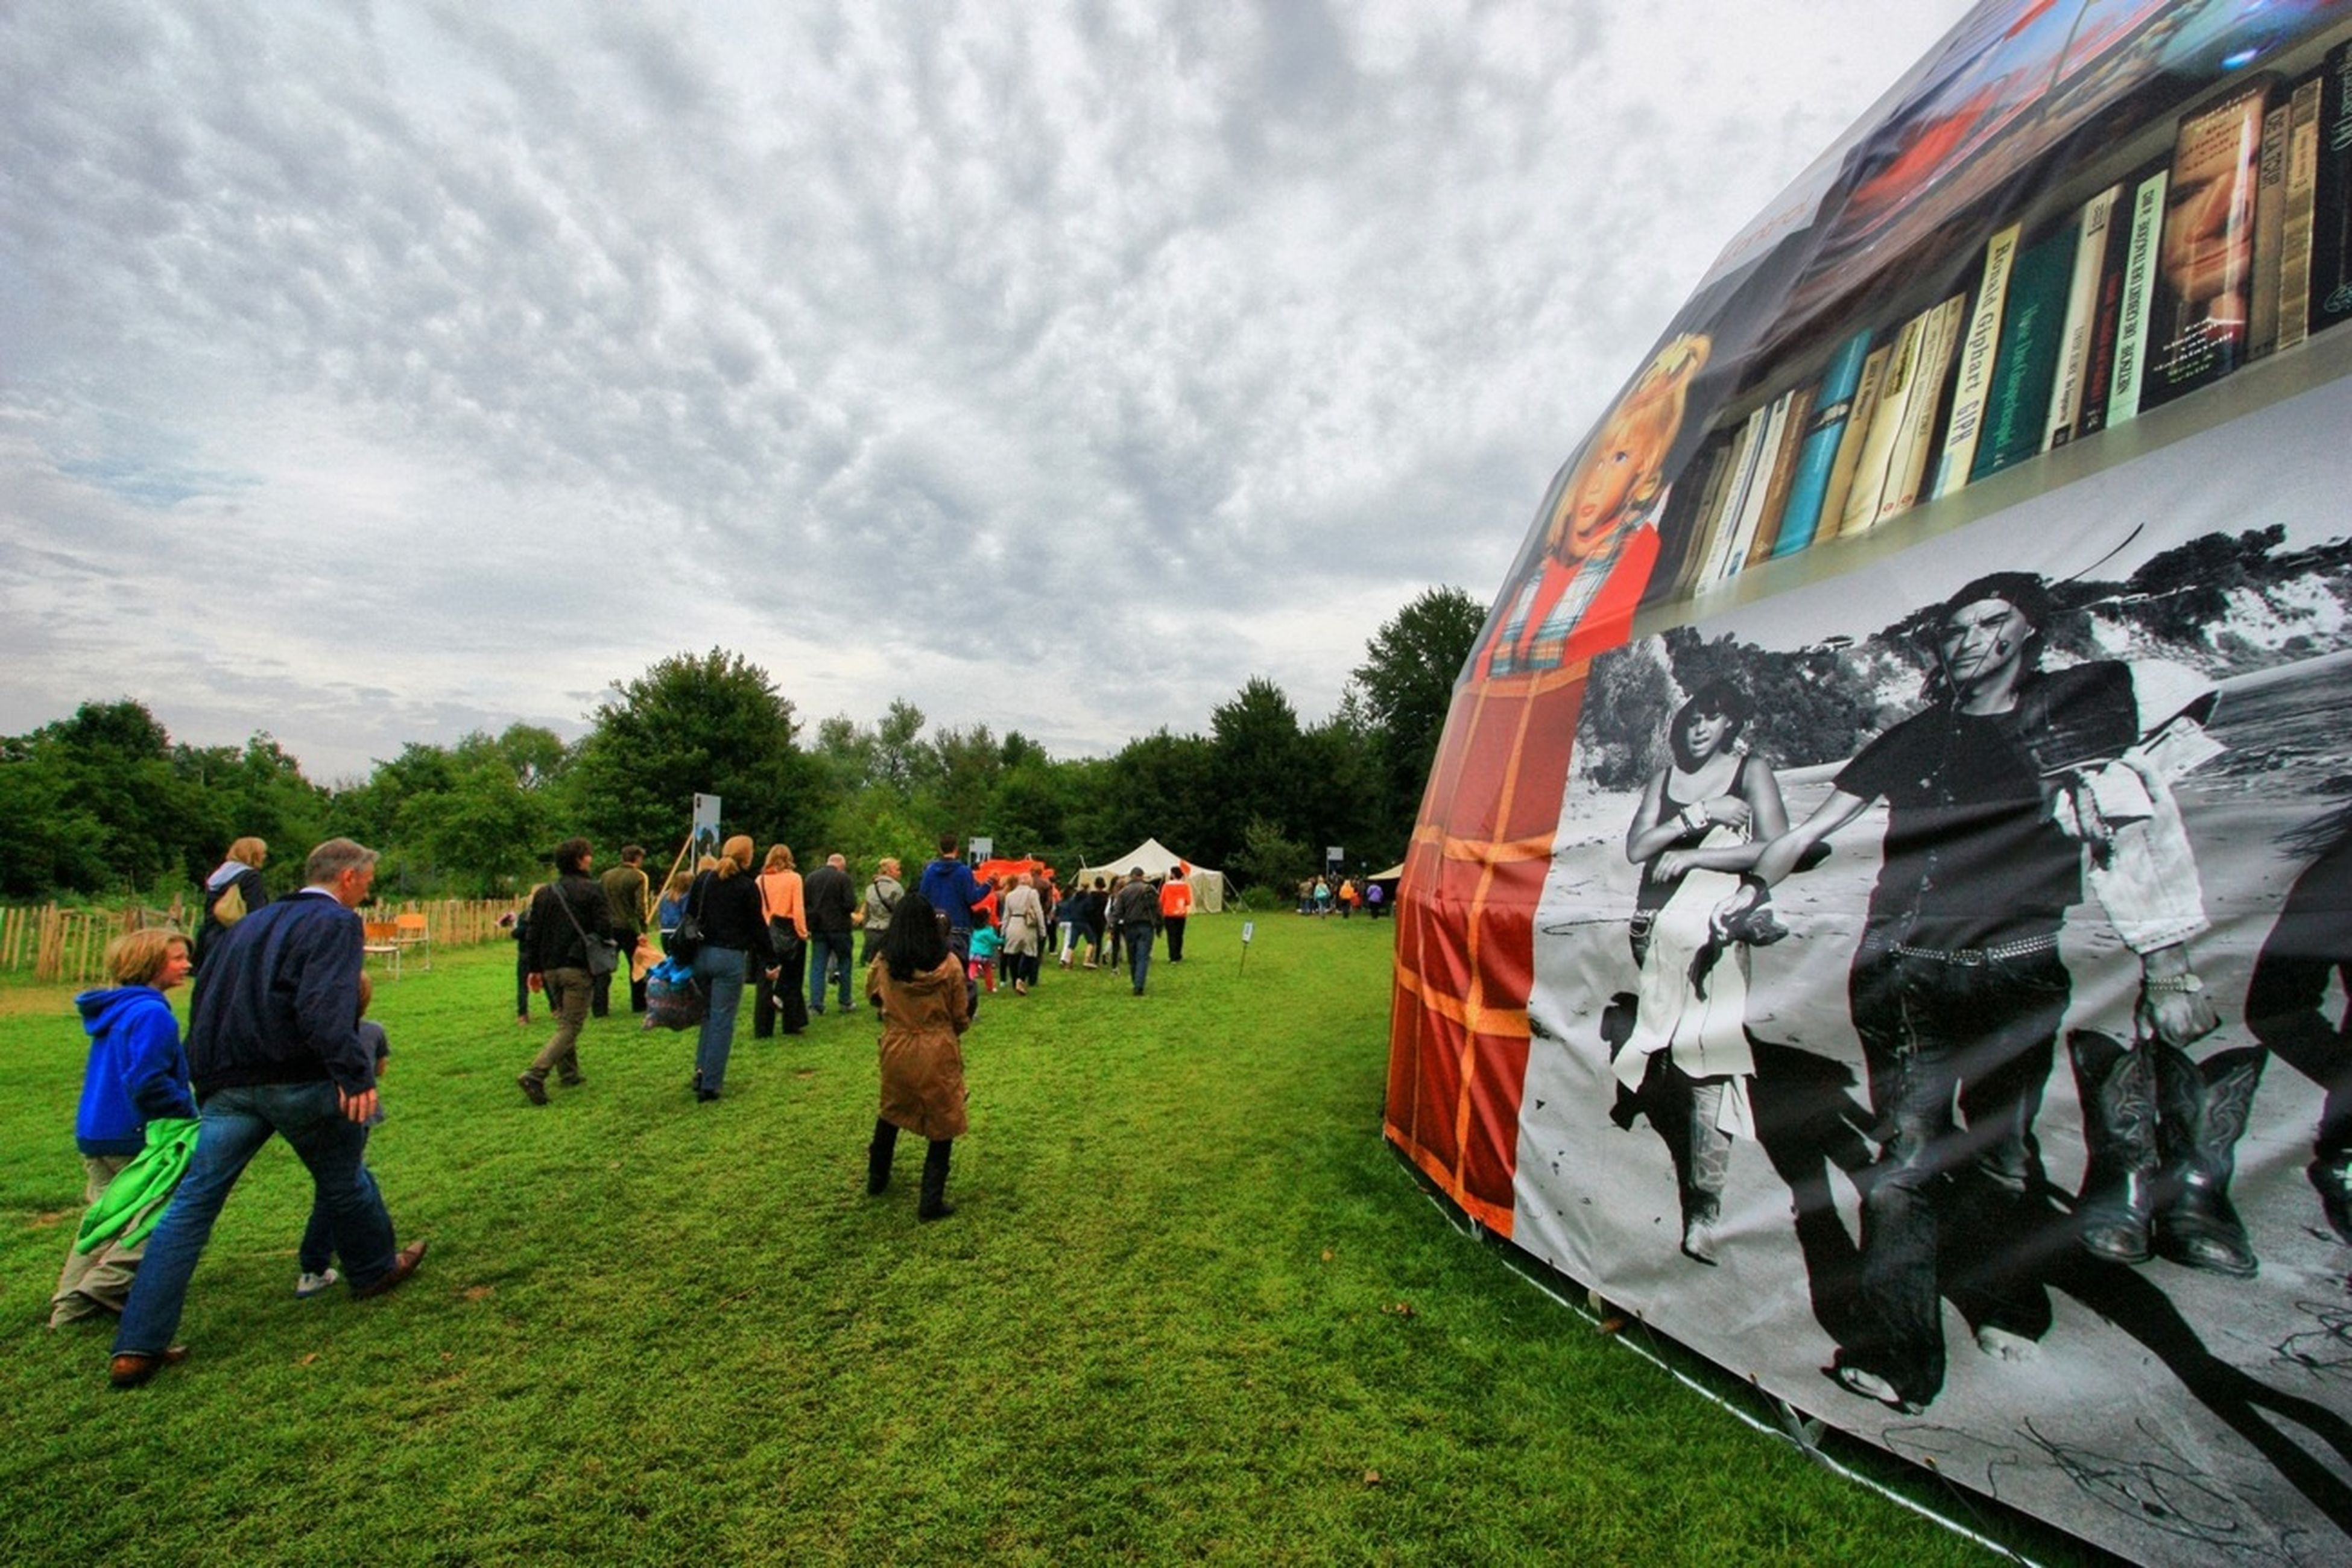 sky, cloud - sky, large group of people, grass, architecture, men, built structure, building exterior, cloudy, cloud, day, person, flag, field, outdoors, leisure activity, lifestyles, graffiti, tradition